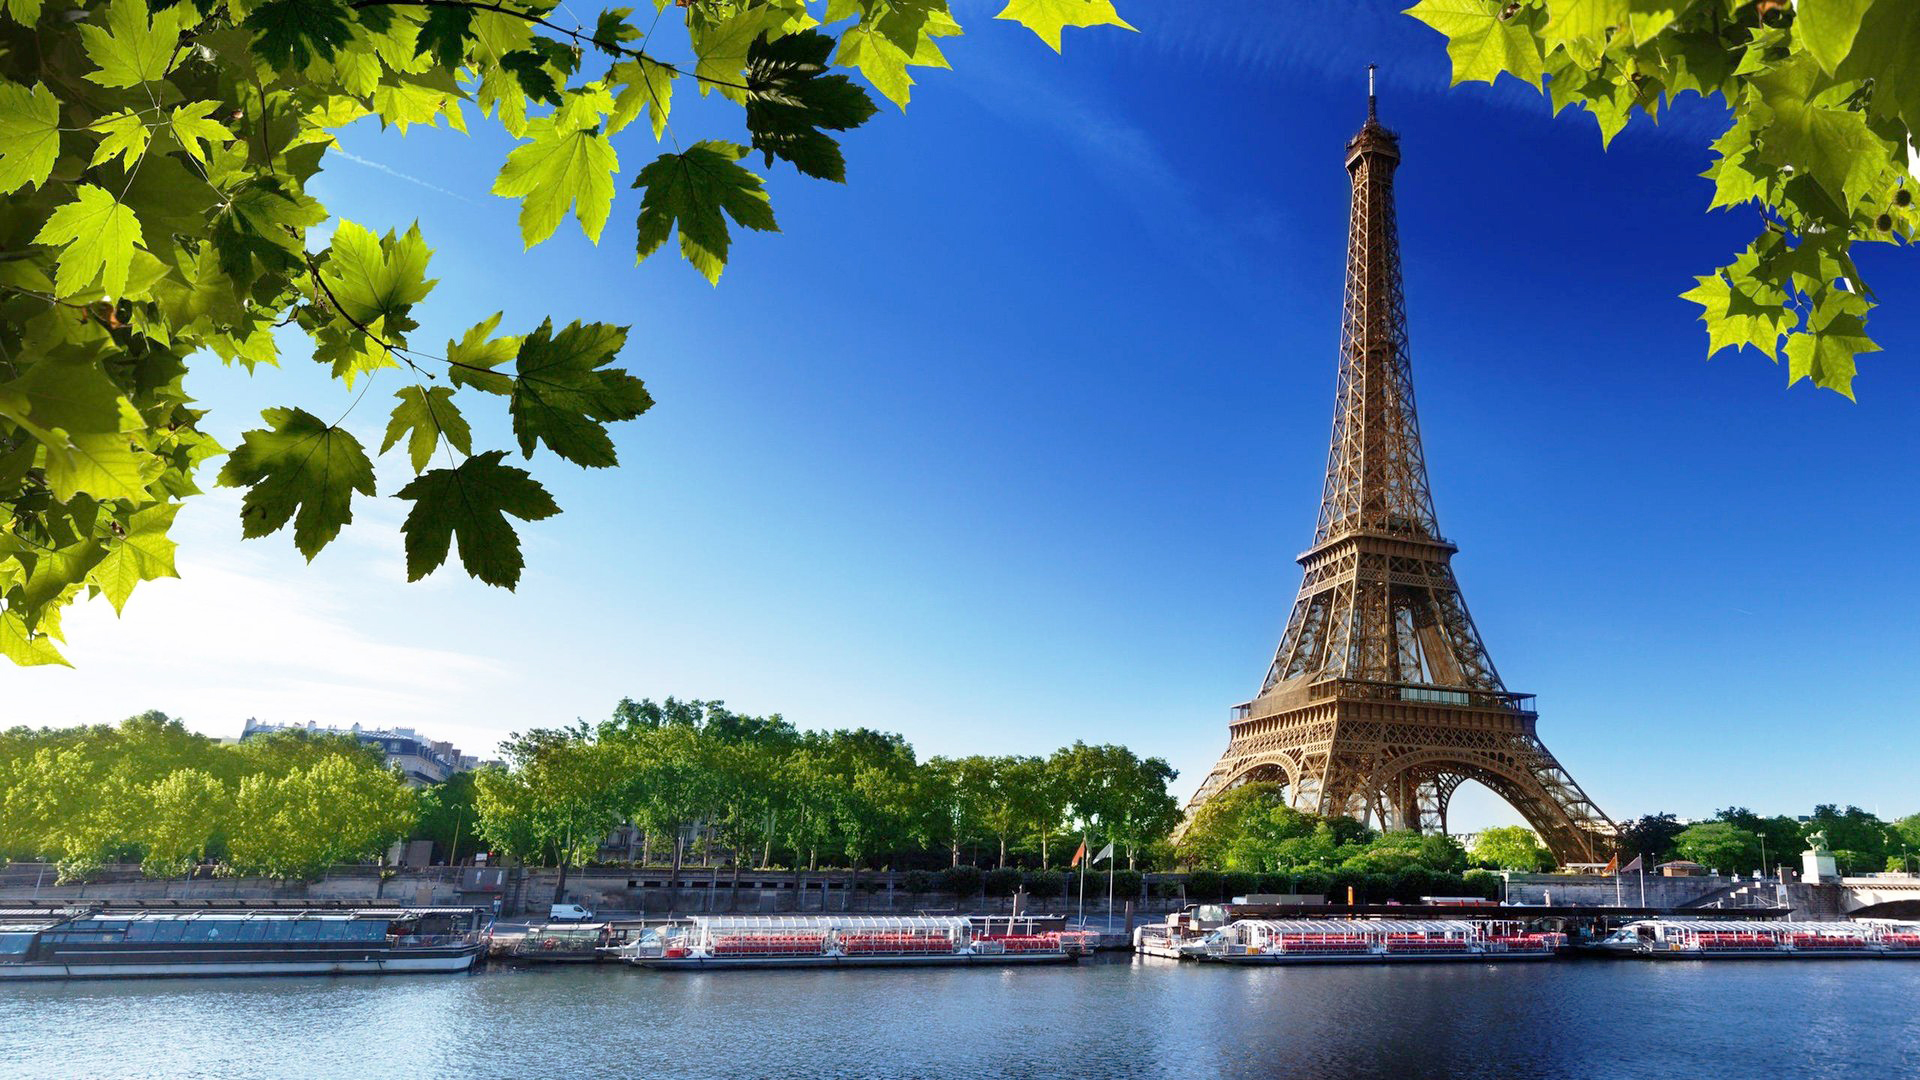 Eiffel Tower seen from the Seine river. Virtual background to use on Zoom, Microsoft Teams, Skype, Google Meet, WebEx or any other compatible app.